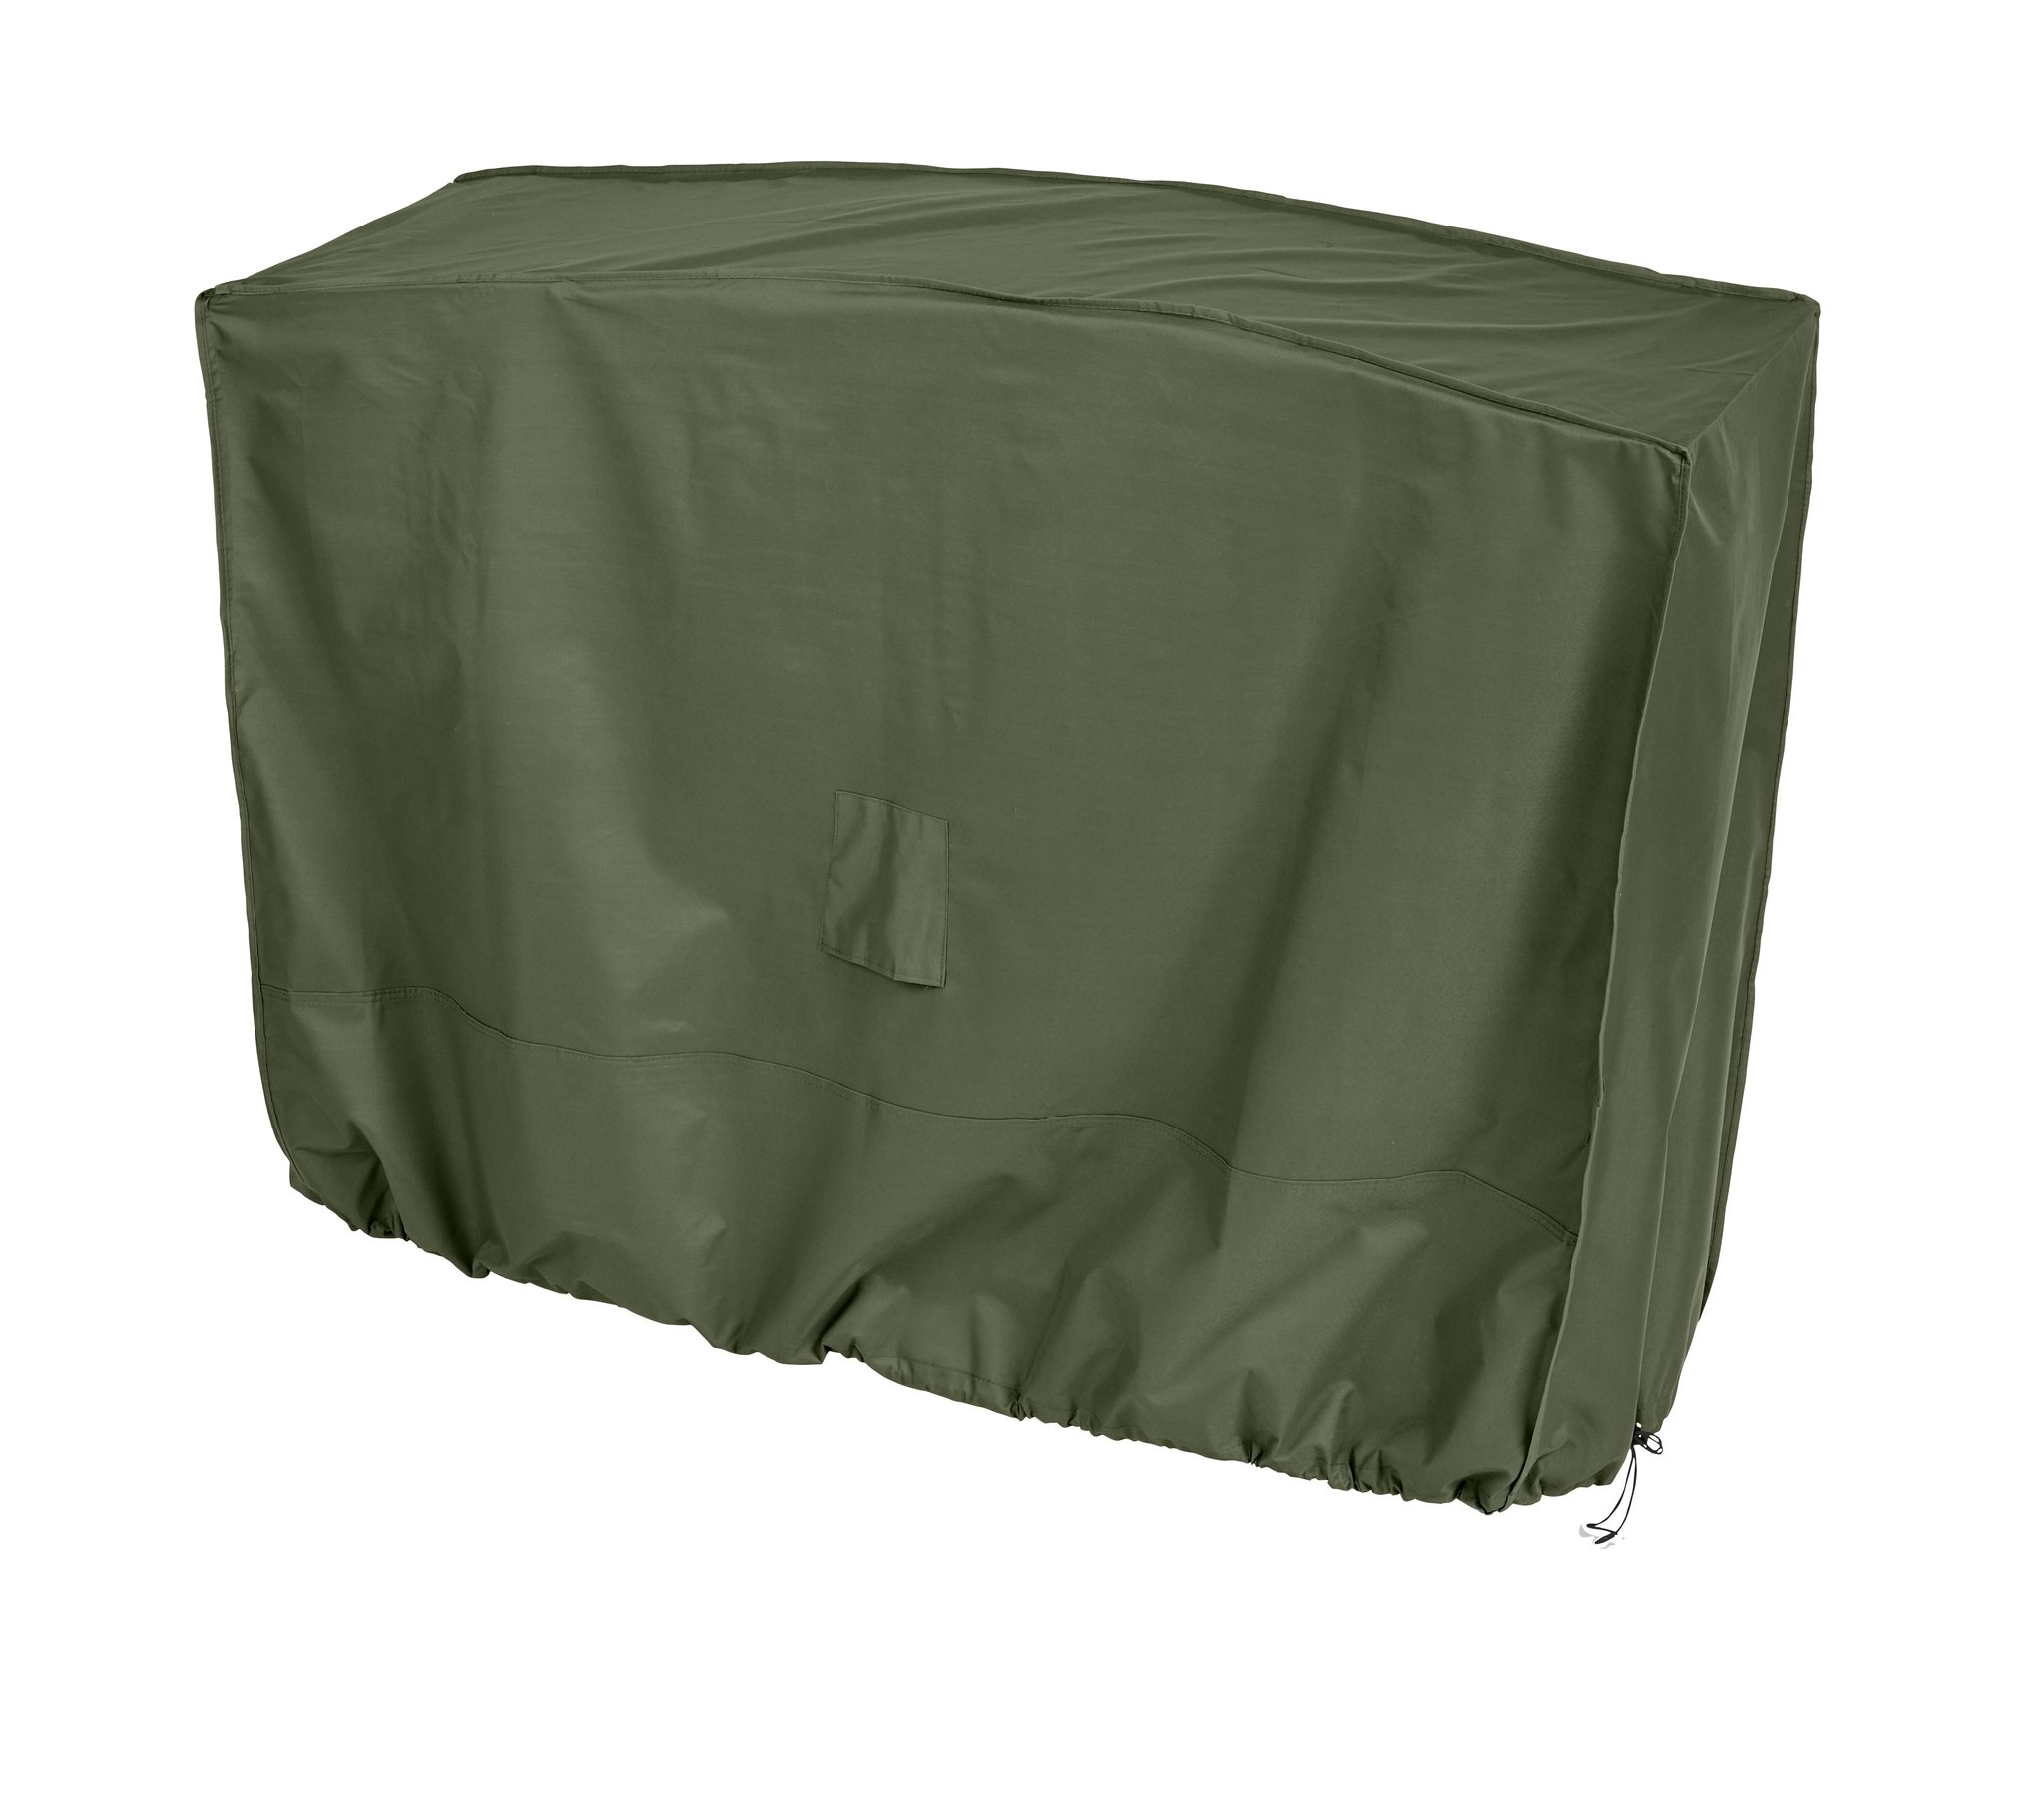 Gardman - Large Barbecue - Cover lowest price